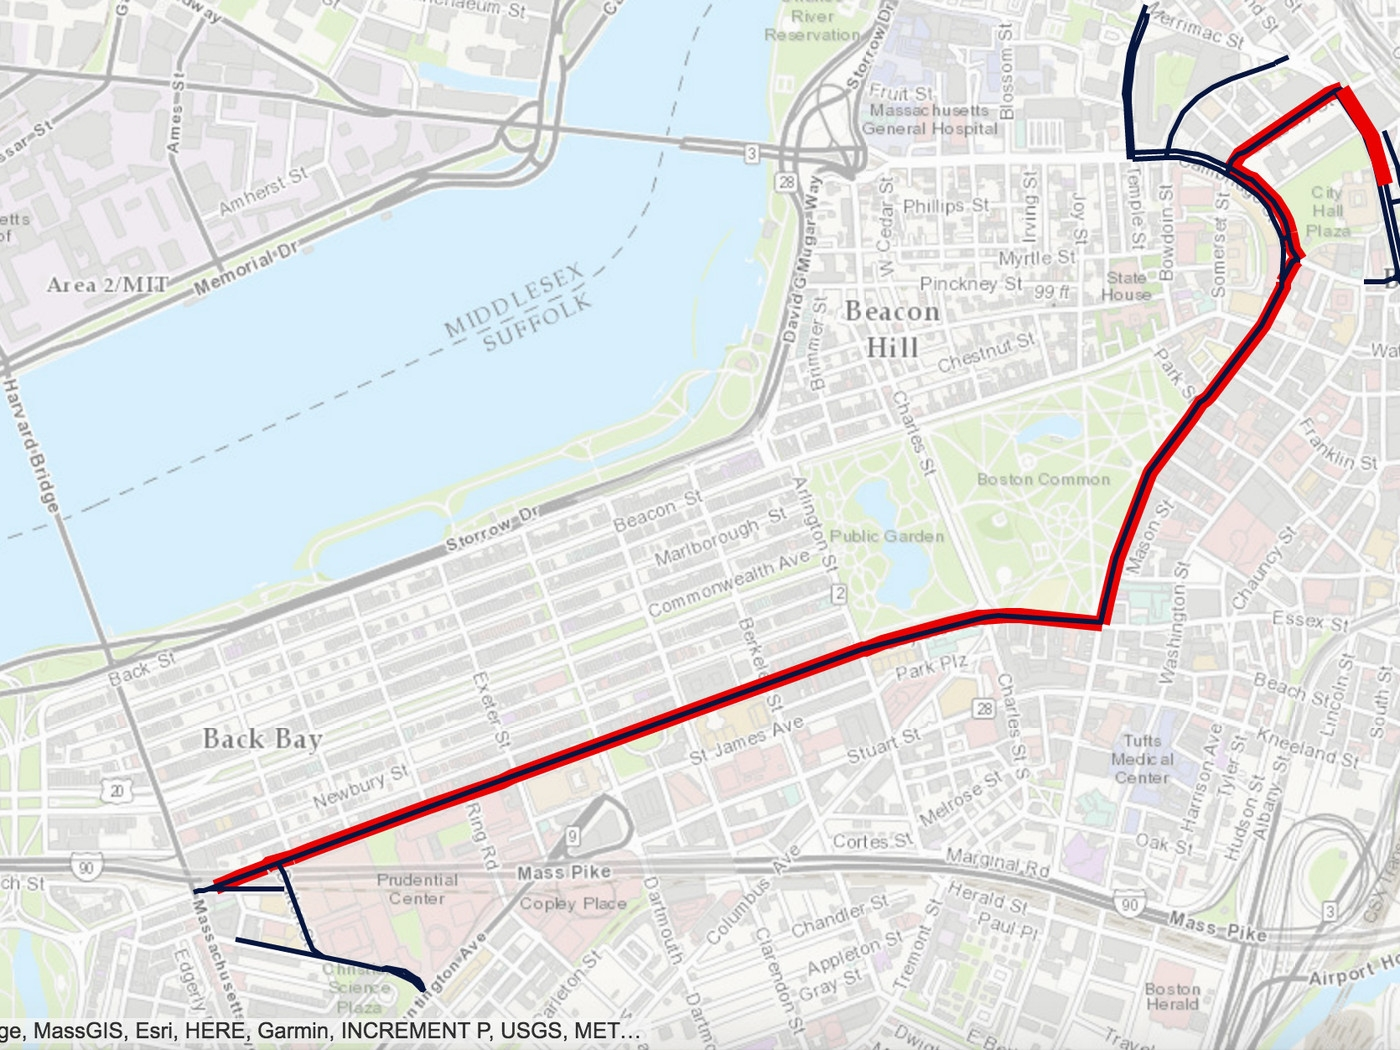 Patriots Super Bowl Parade 2017: Map, Route, And Road pertaining to Super Bowl 2019 Road Closures Map